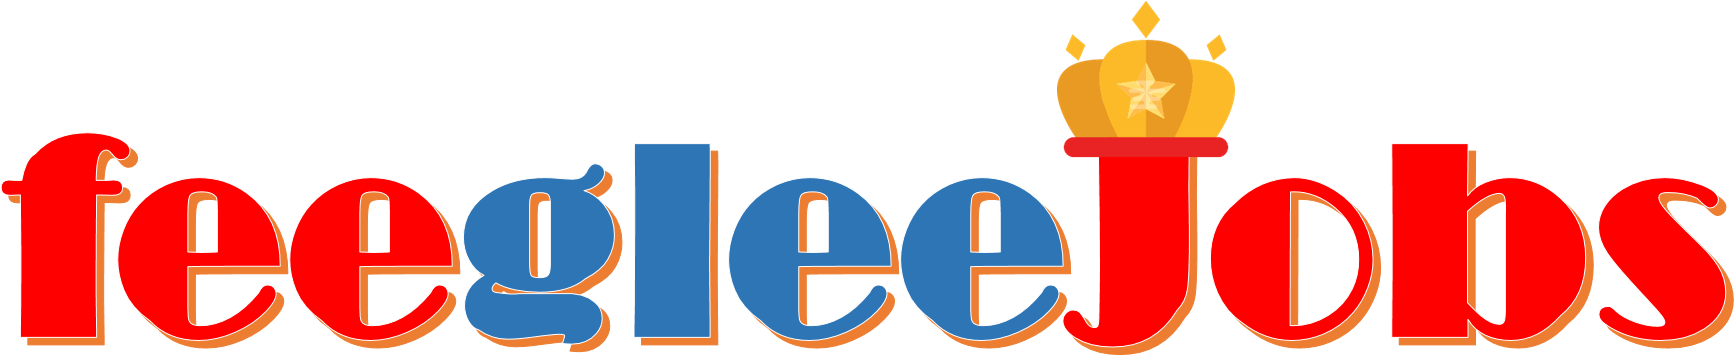 FeeGlee Jobs